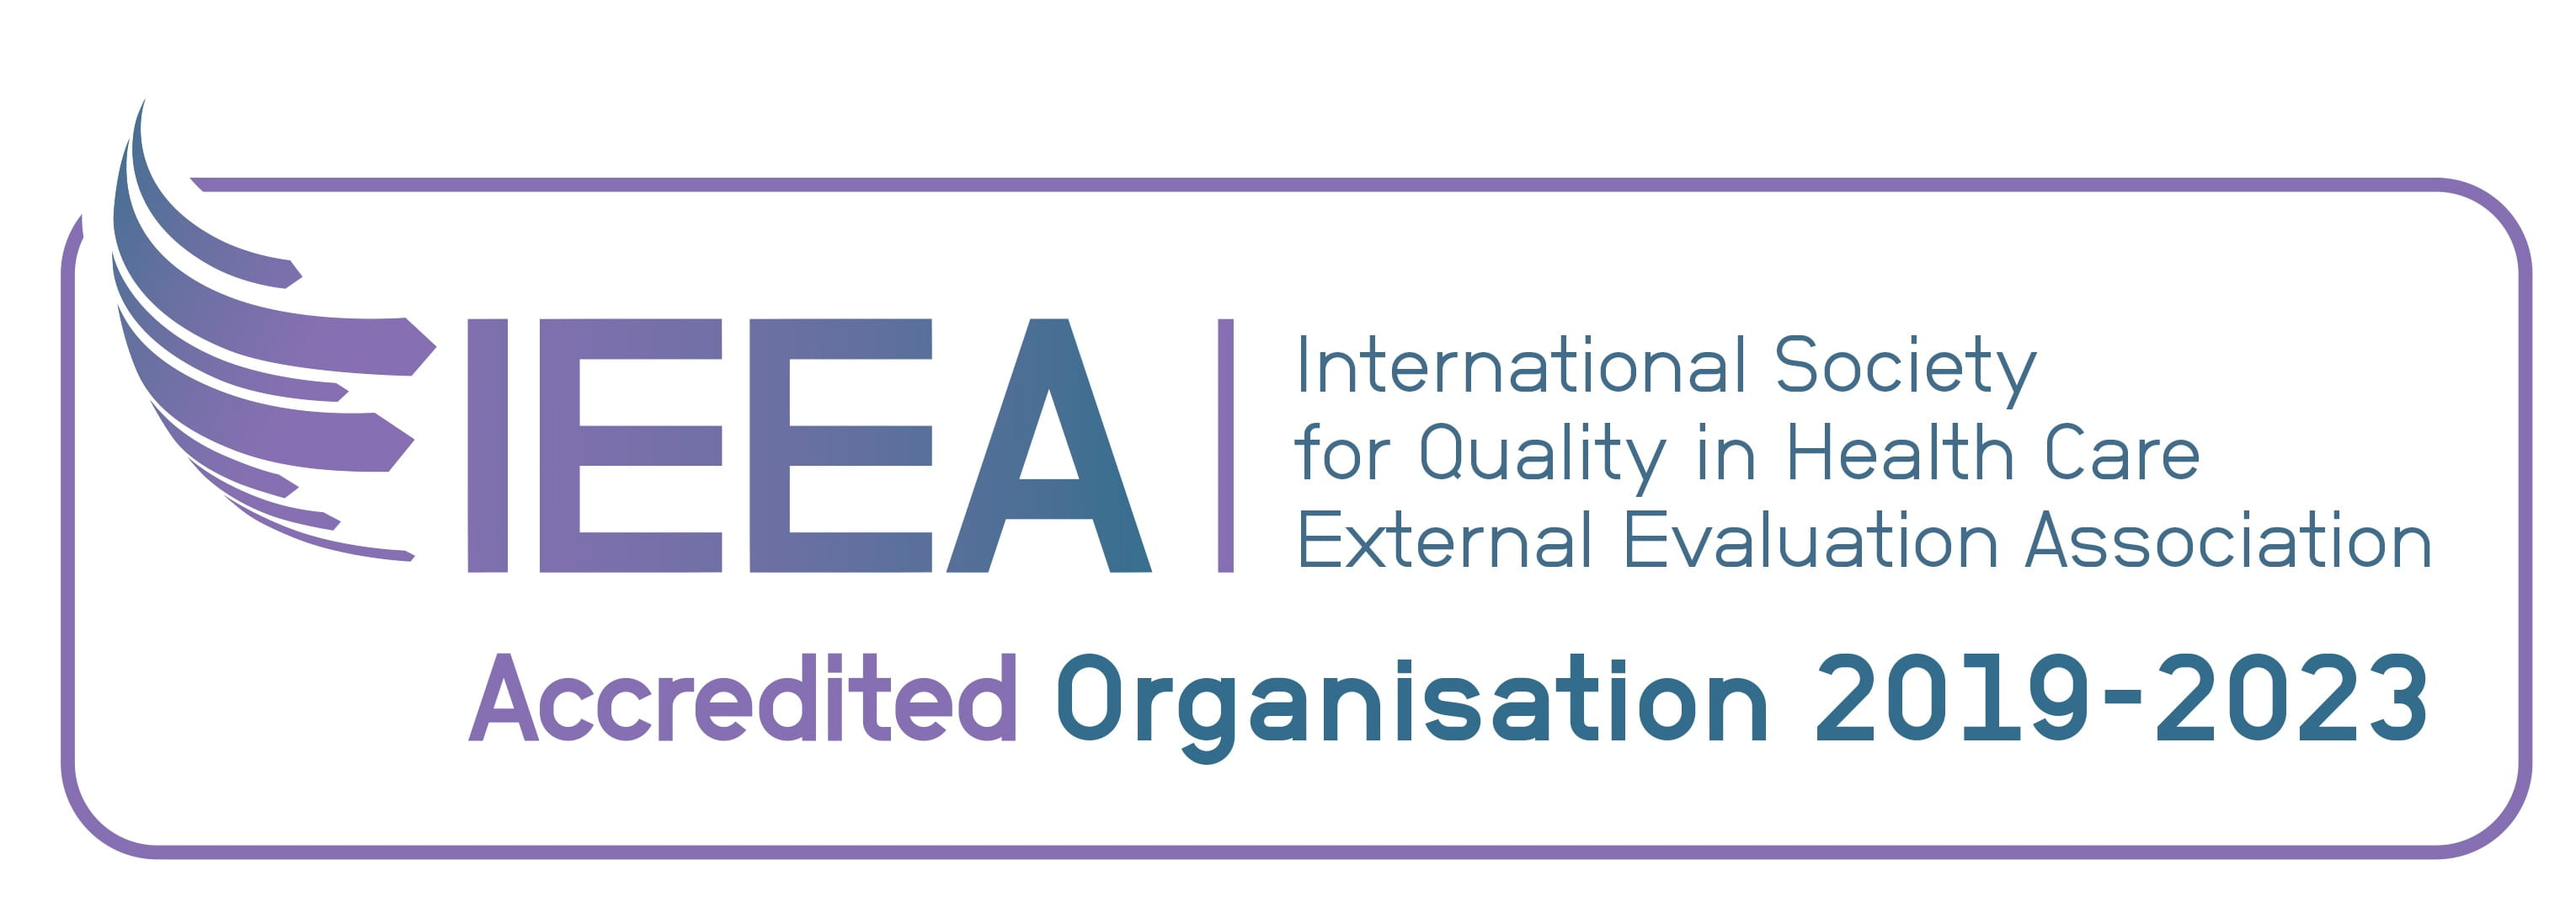 International Society for Quality in Health Care External Evaluation Association (IEEA) logo